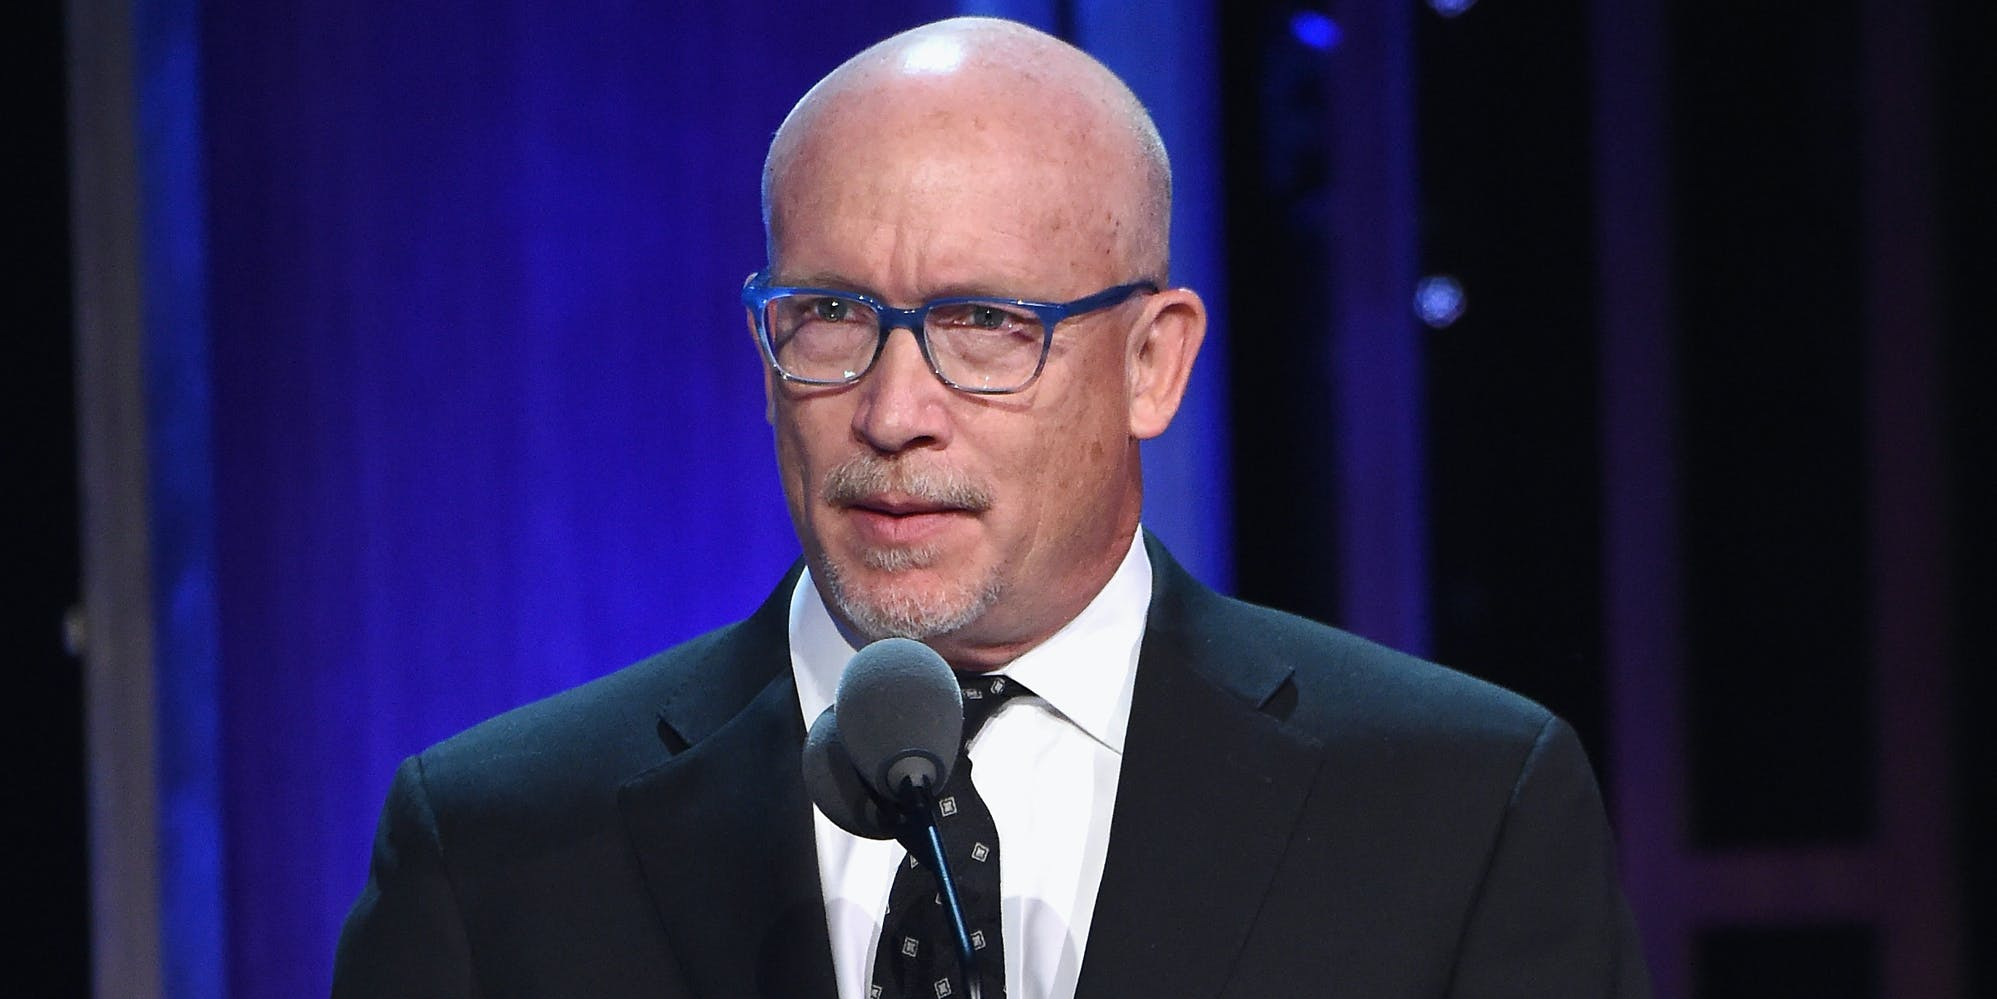 NEW YORK, NY - MAY 21:  Director Alex Gibney speaks onstage during The 75th Annual Peabody Awards Ceremony at Cipriani Wall Street on May 21, 2016 in New York City.  (Photo by Mike Coppola/Getty Images for Peabody Awards)